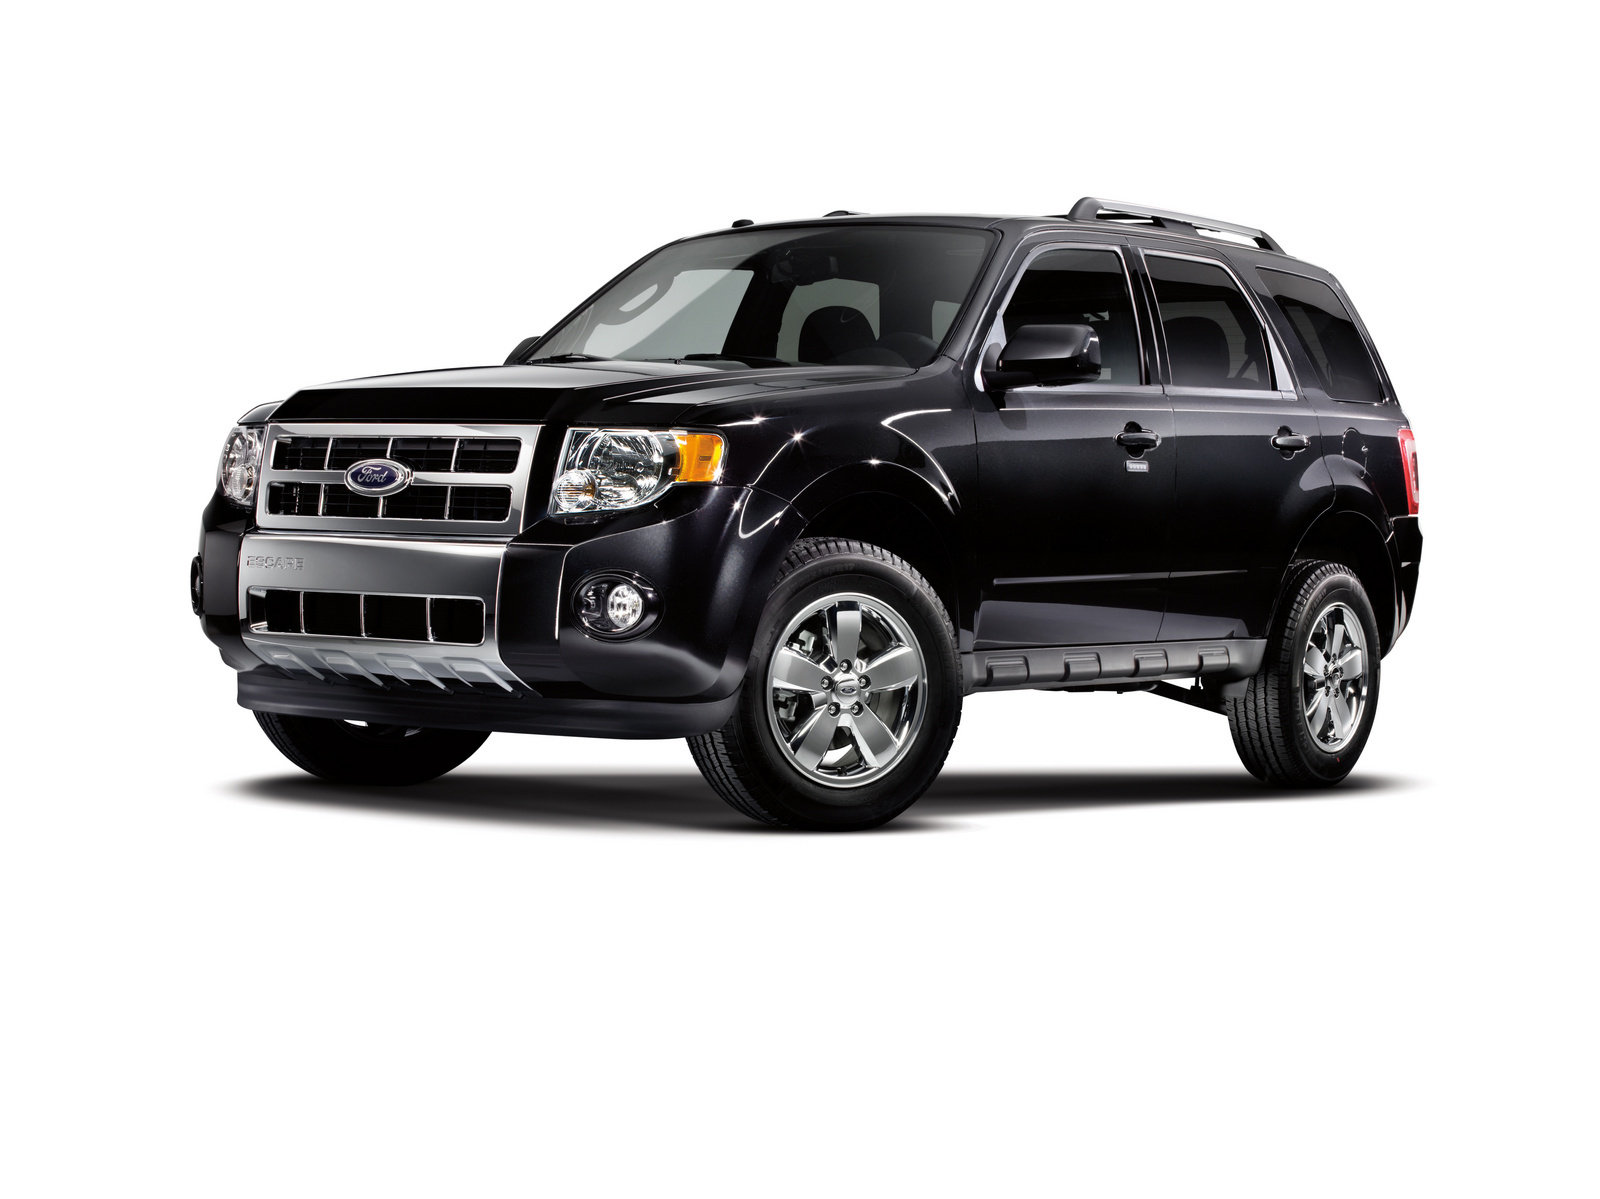 2012 ford escape review cargurus. Black Bedroom Furniture Sets. Home Design Ideas